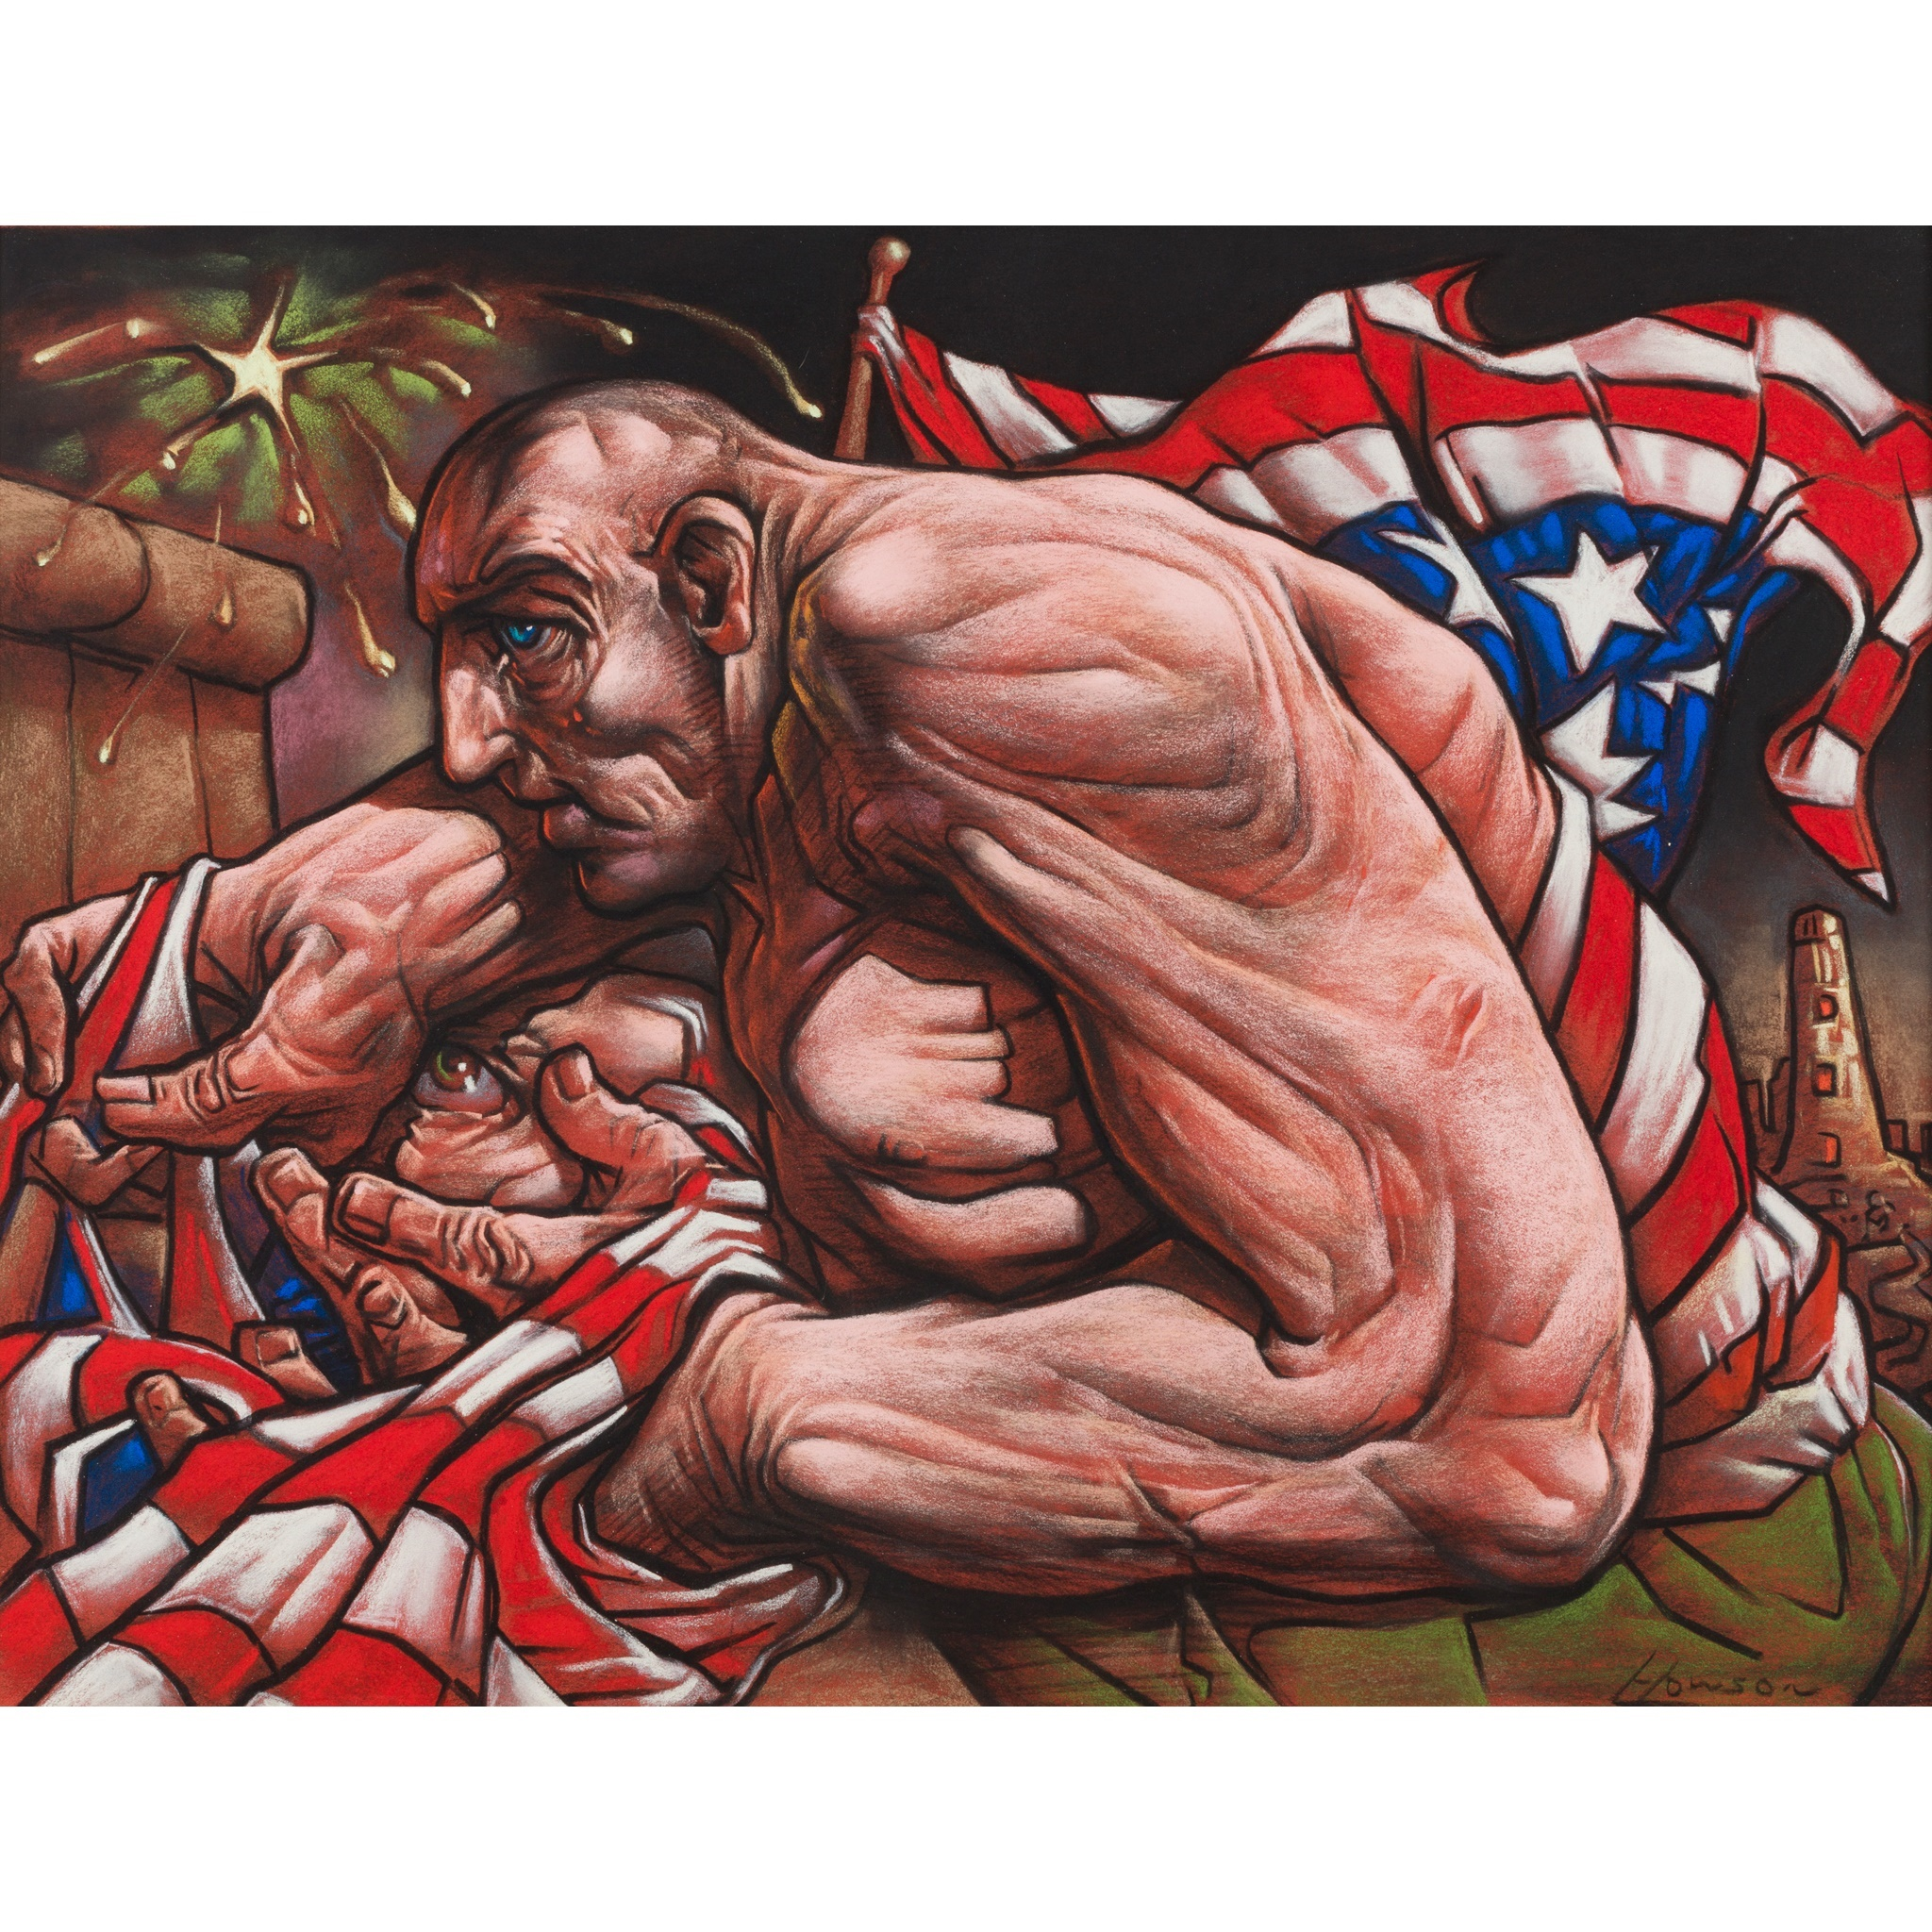 LOT 59 | § PETER HOWSON O.B.E. (SCOTTISH B.1958) SENTINAL Signed, pastel | 48cm x 61cm (18in x 24in) | Provenance: Peter Howson Studio | £2,000 - £3,000 + fees